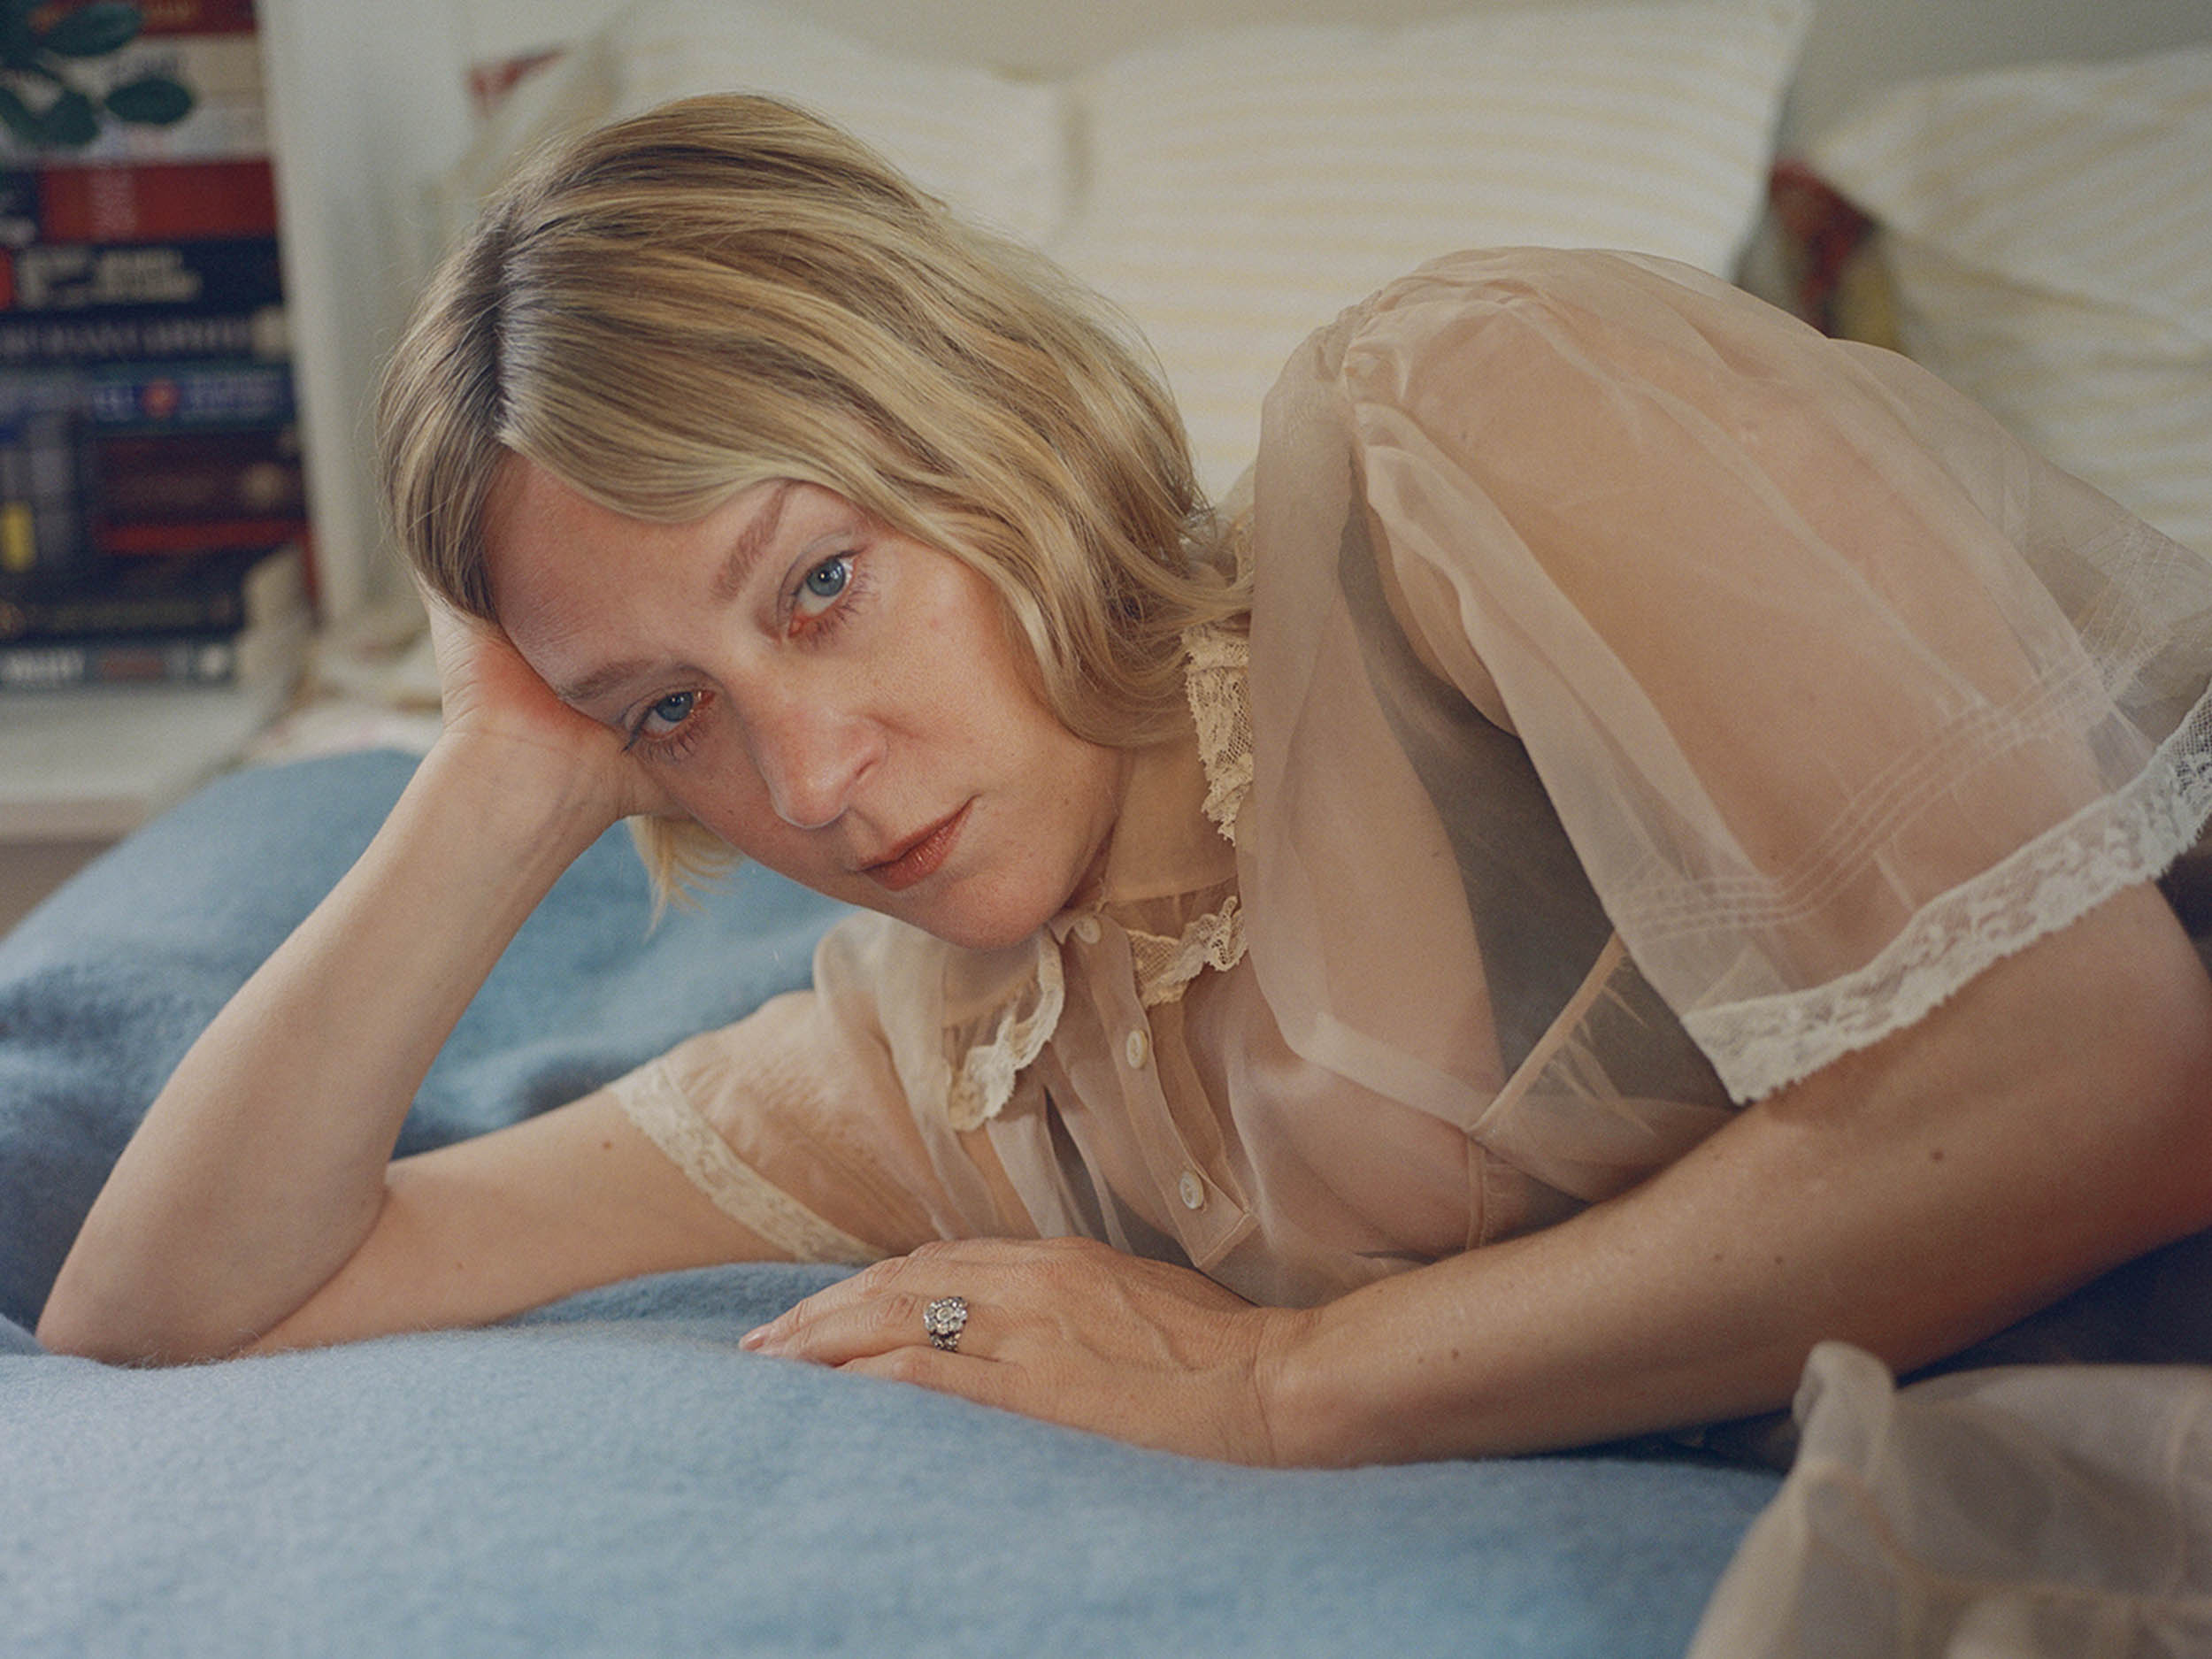 Chloë Sevigny, Haifaa al-Mansour, Hailey Gates, and So Yong Kim on why film's future belongs to outsiders